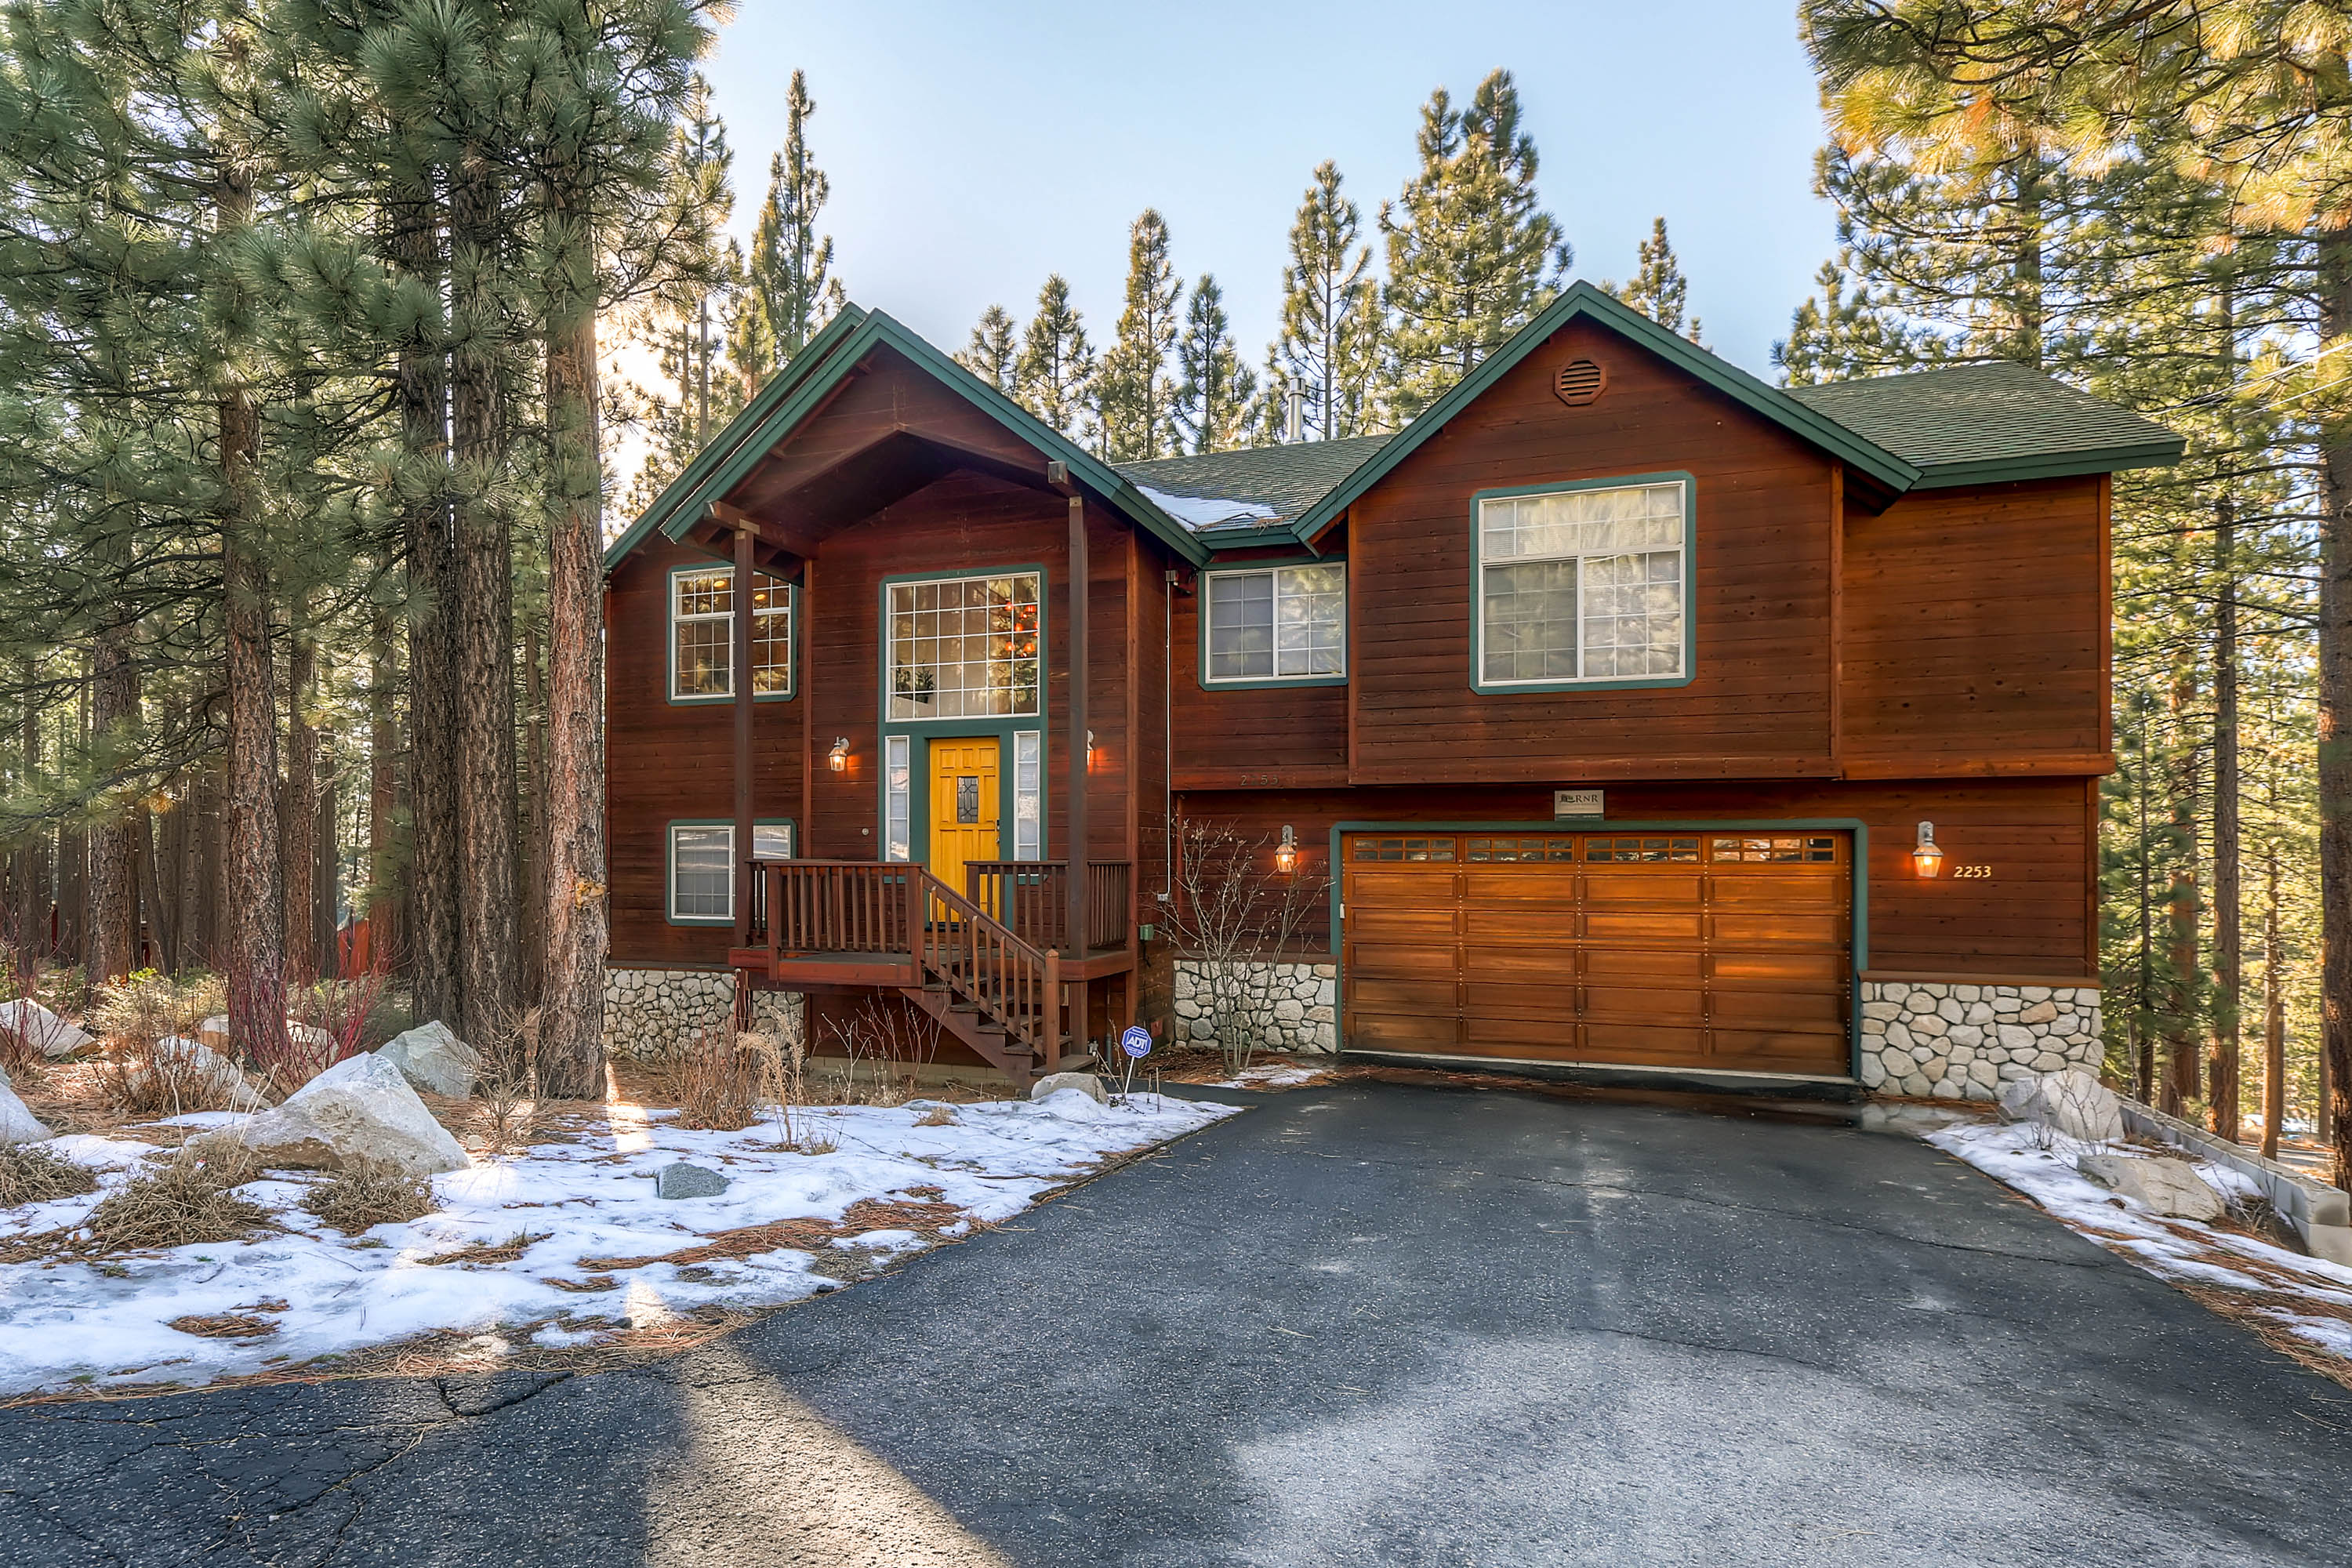 New south lake tahoe vacation rental rnr vacation rentals for Cabin rental tahoe